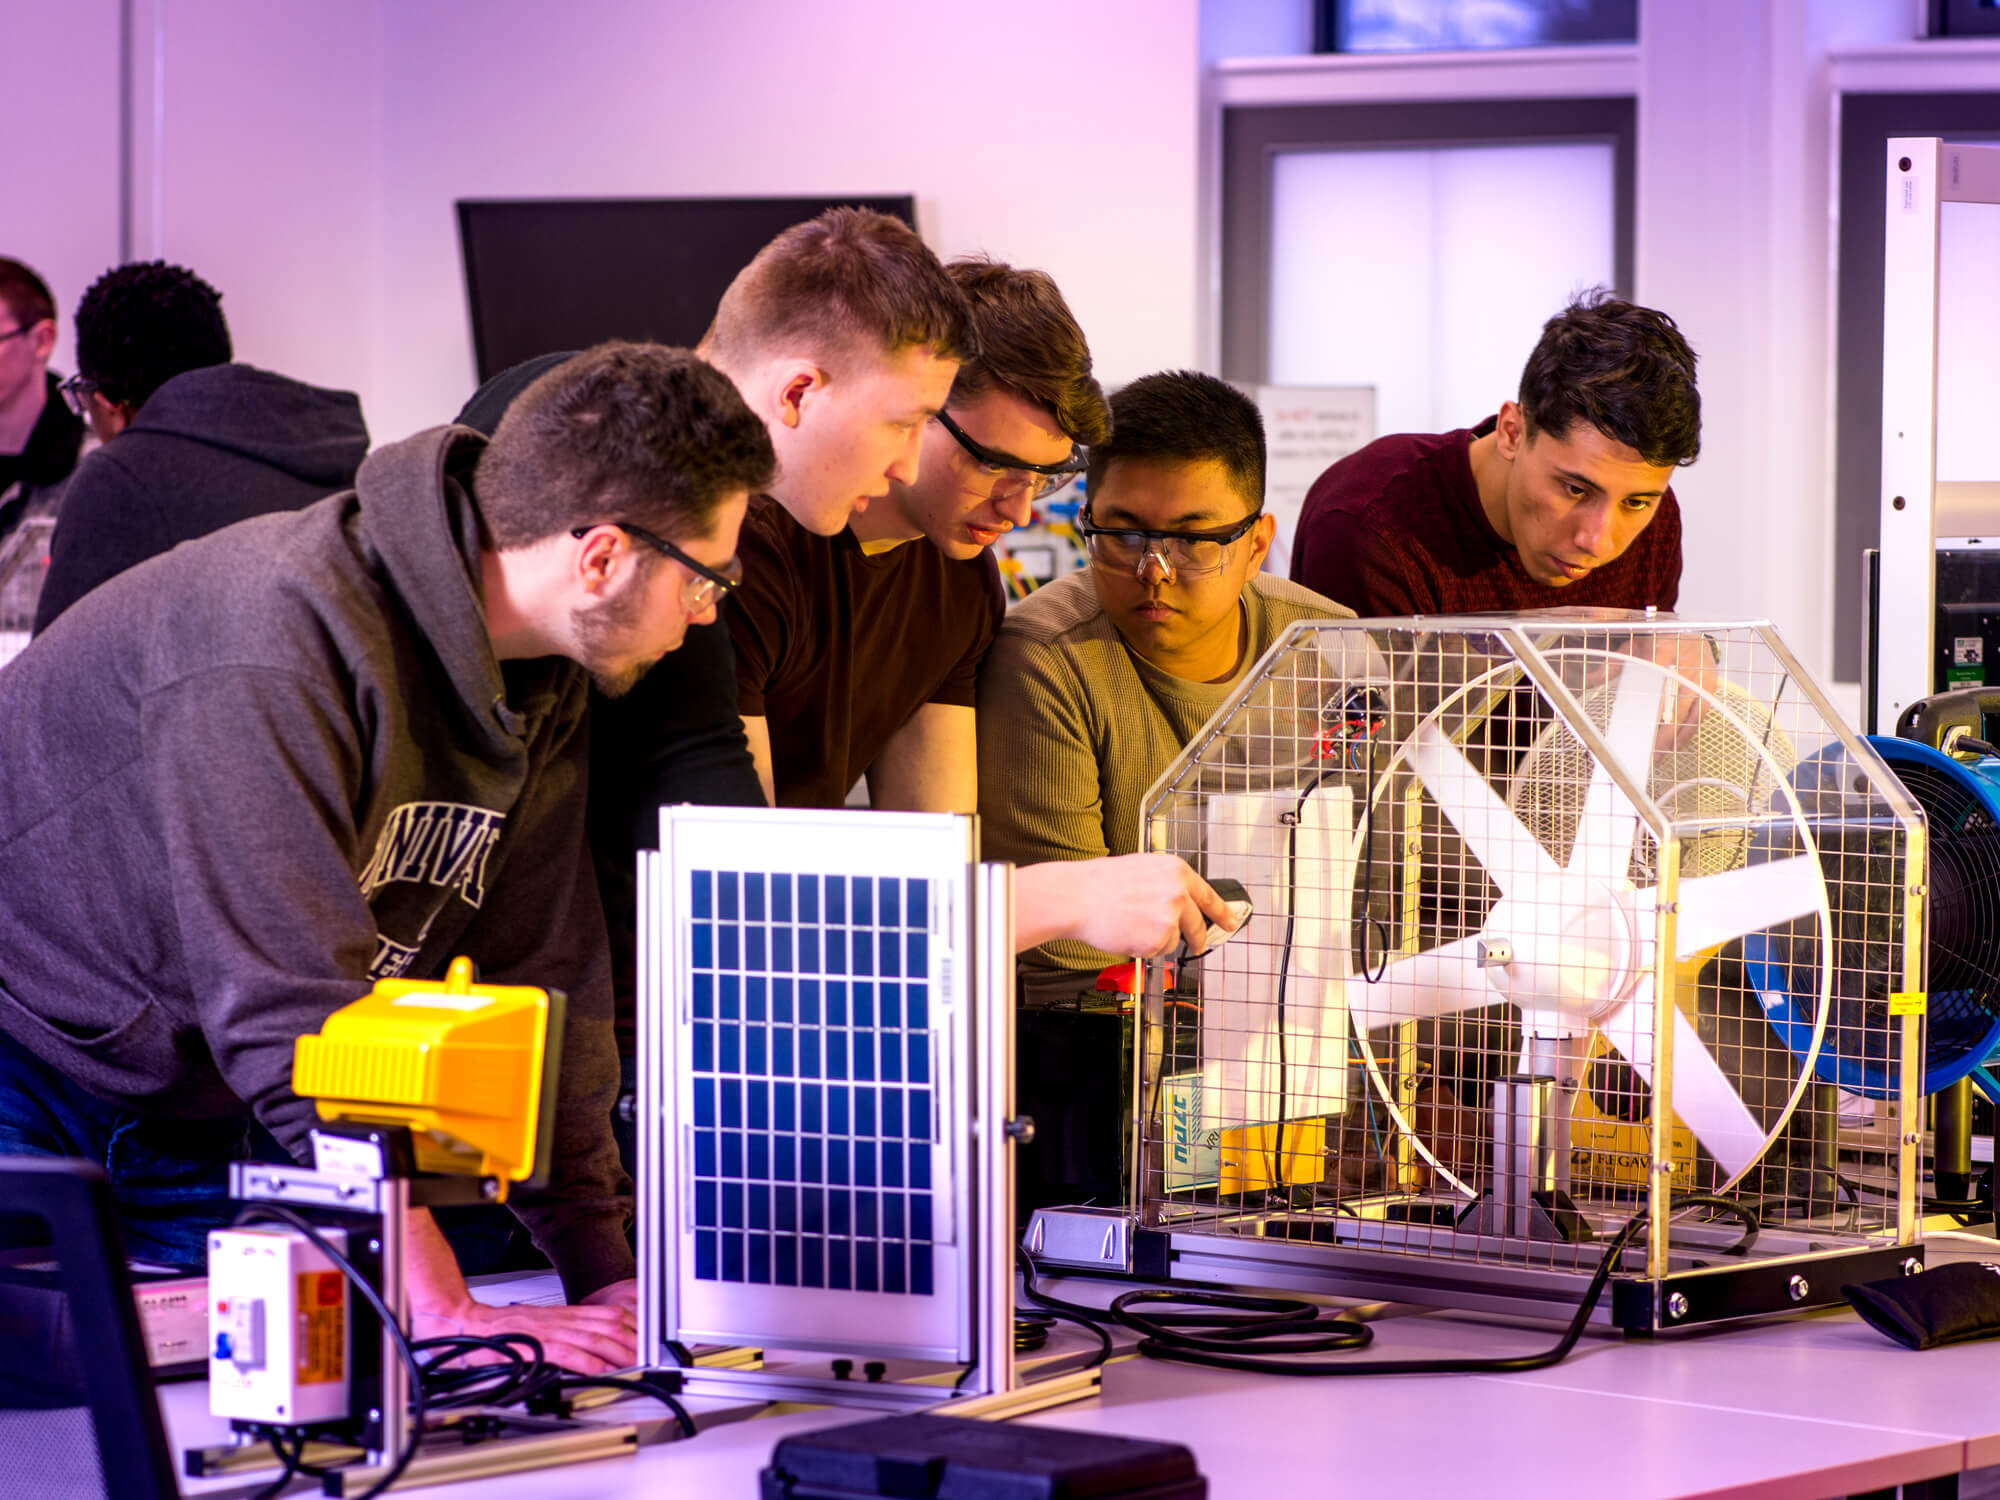 Electrical and Electronic Engineering students using renewable energies equipment